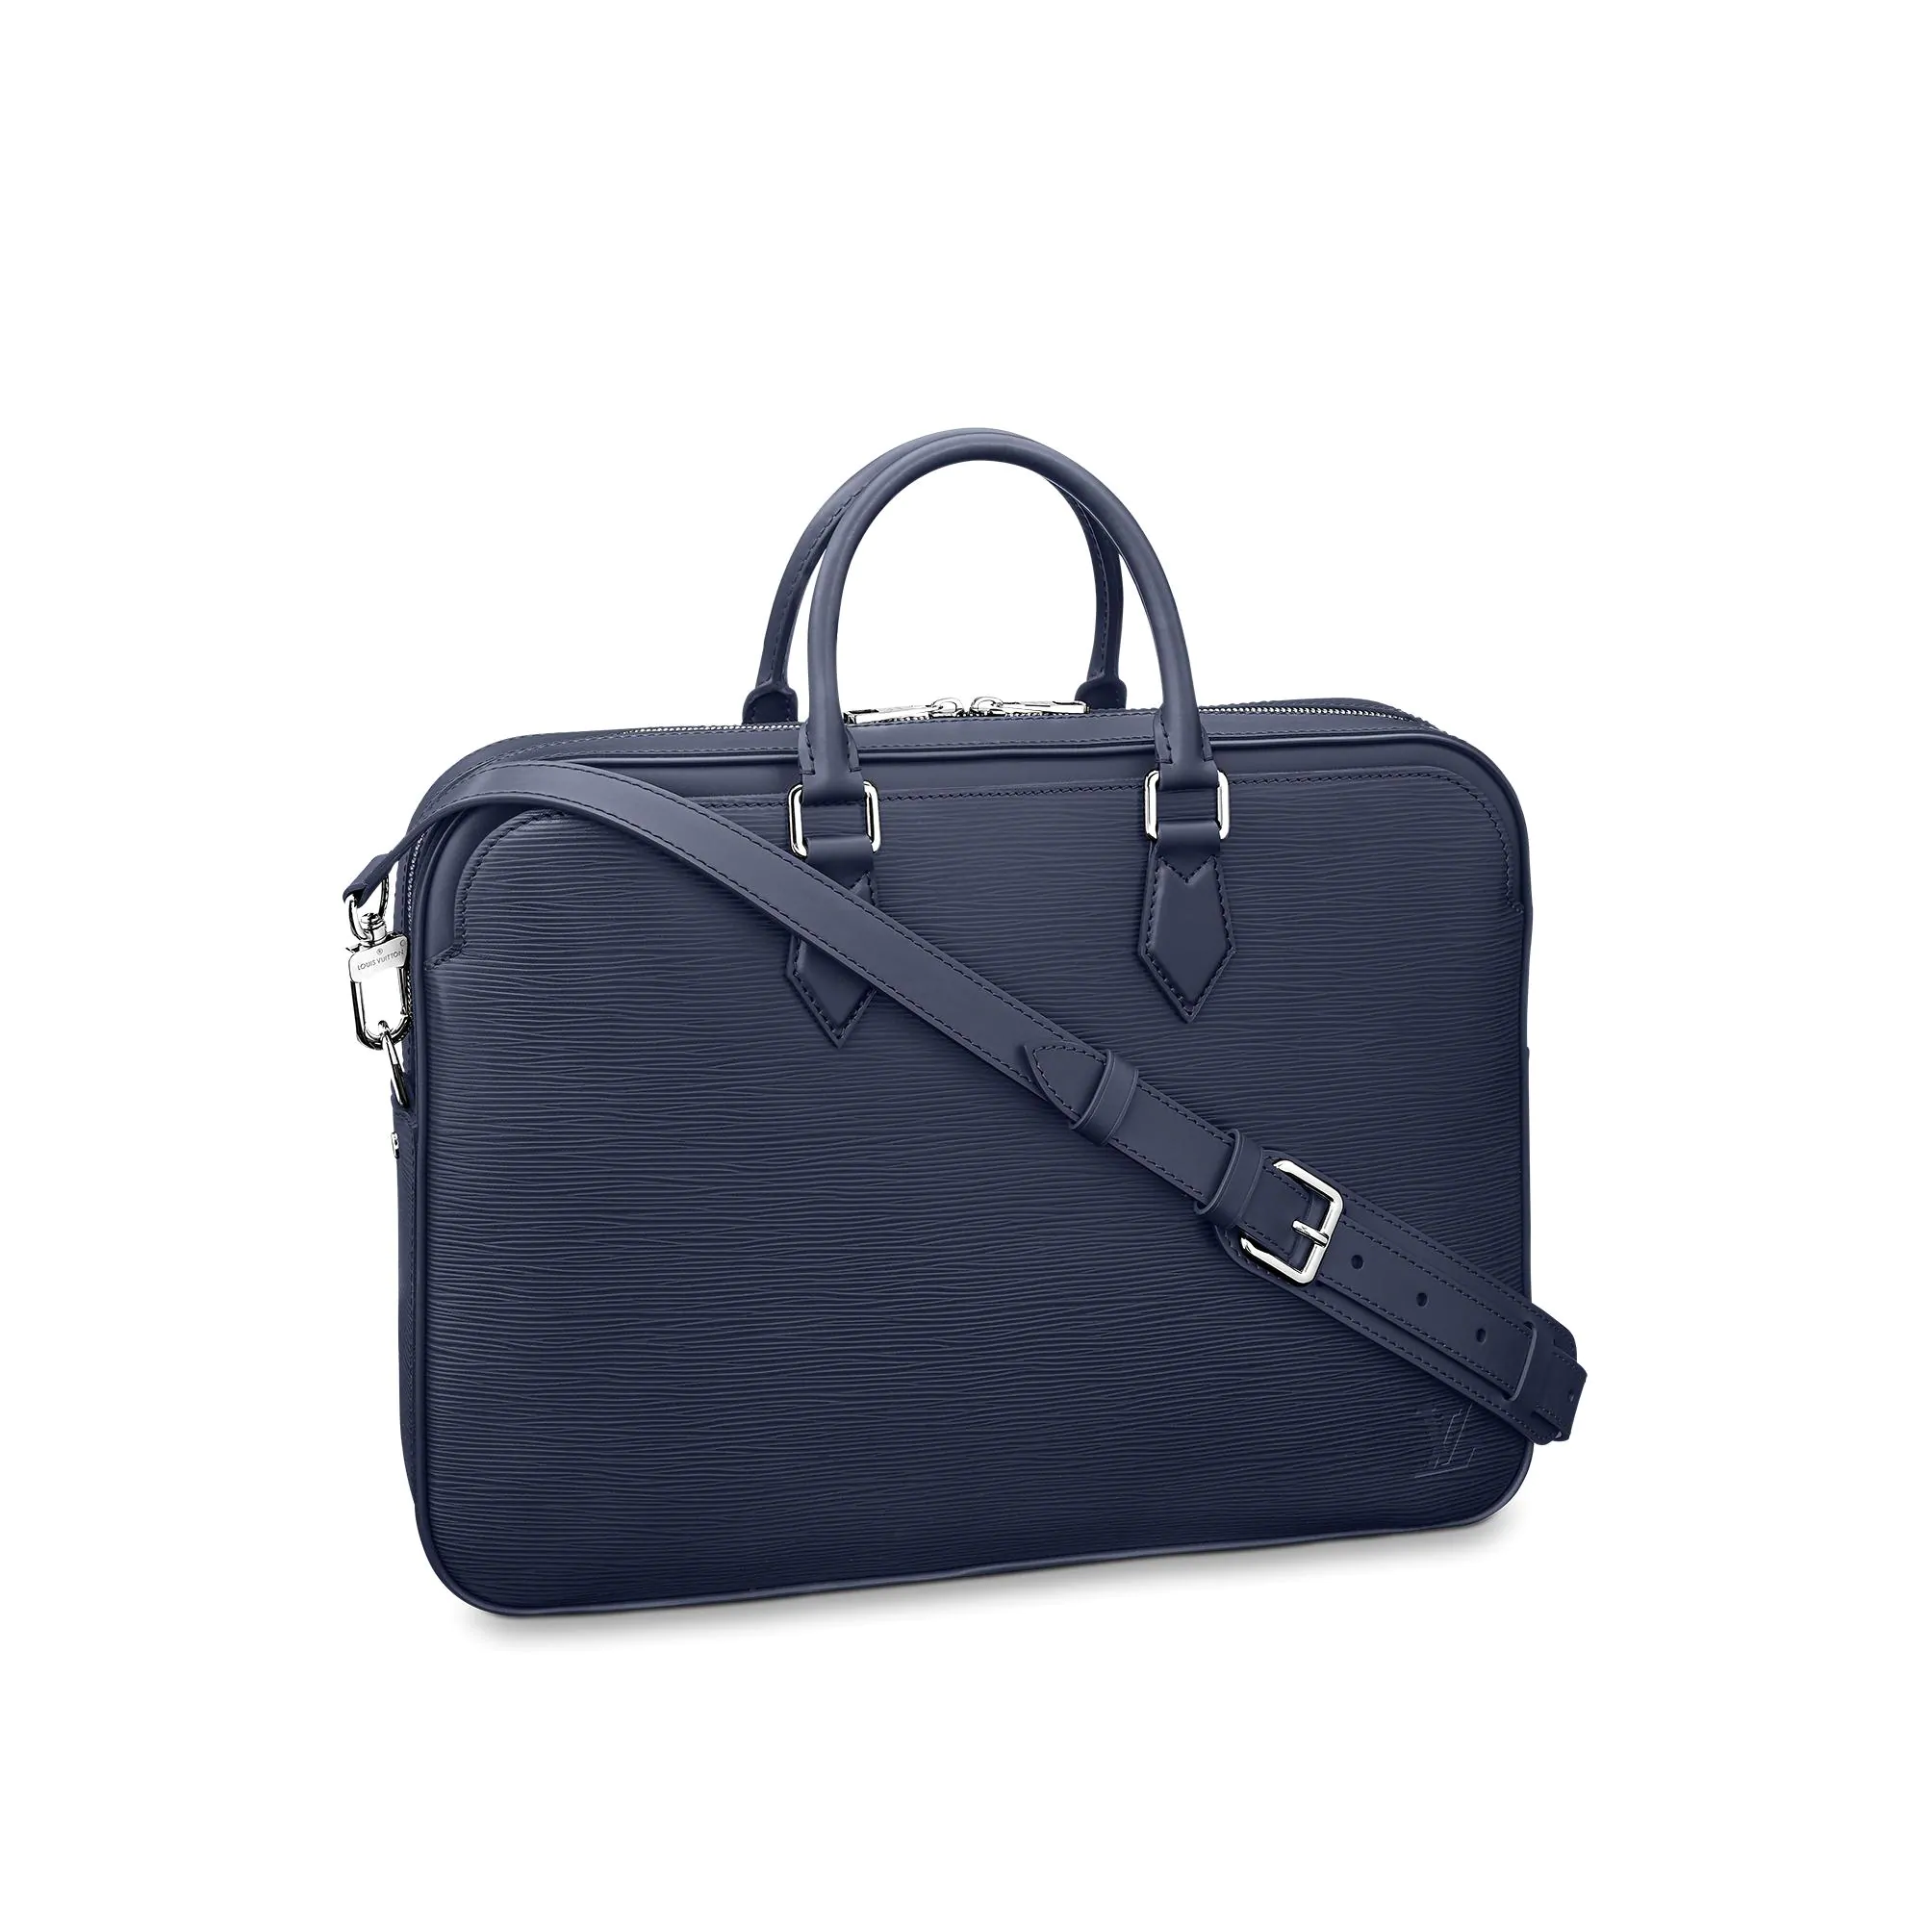 Louis Vuitton Men Dandy Briefcase Top Handle Bag in Epi Leather M54405 Blue